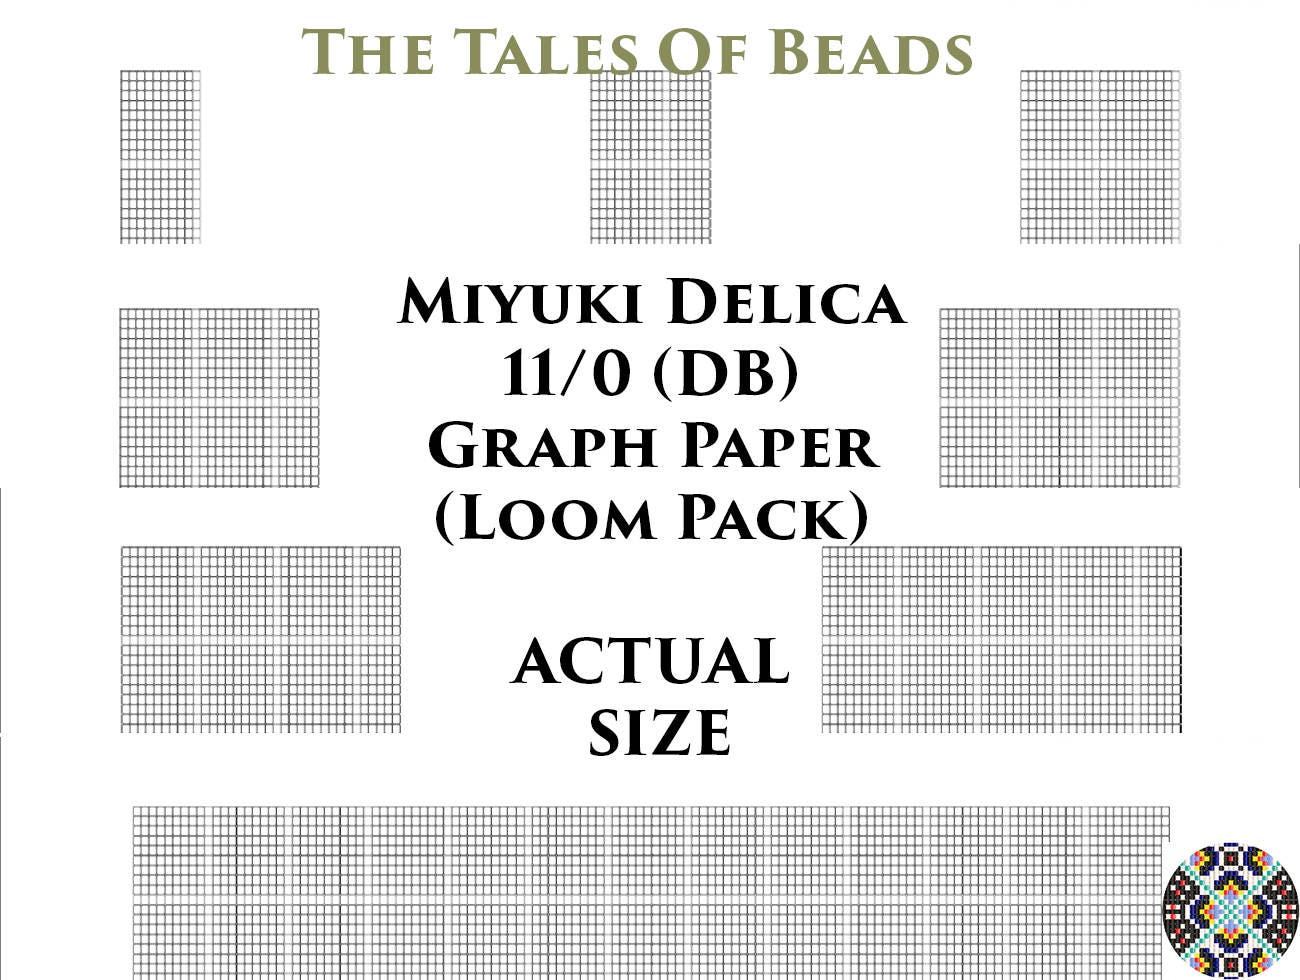 11/0 Miyuki Delica Beading Graph Paper Actual Size Seed Bead